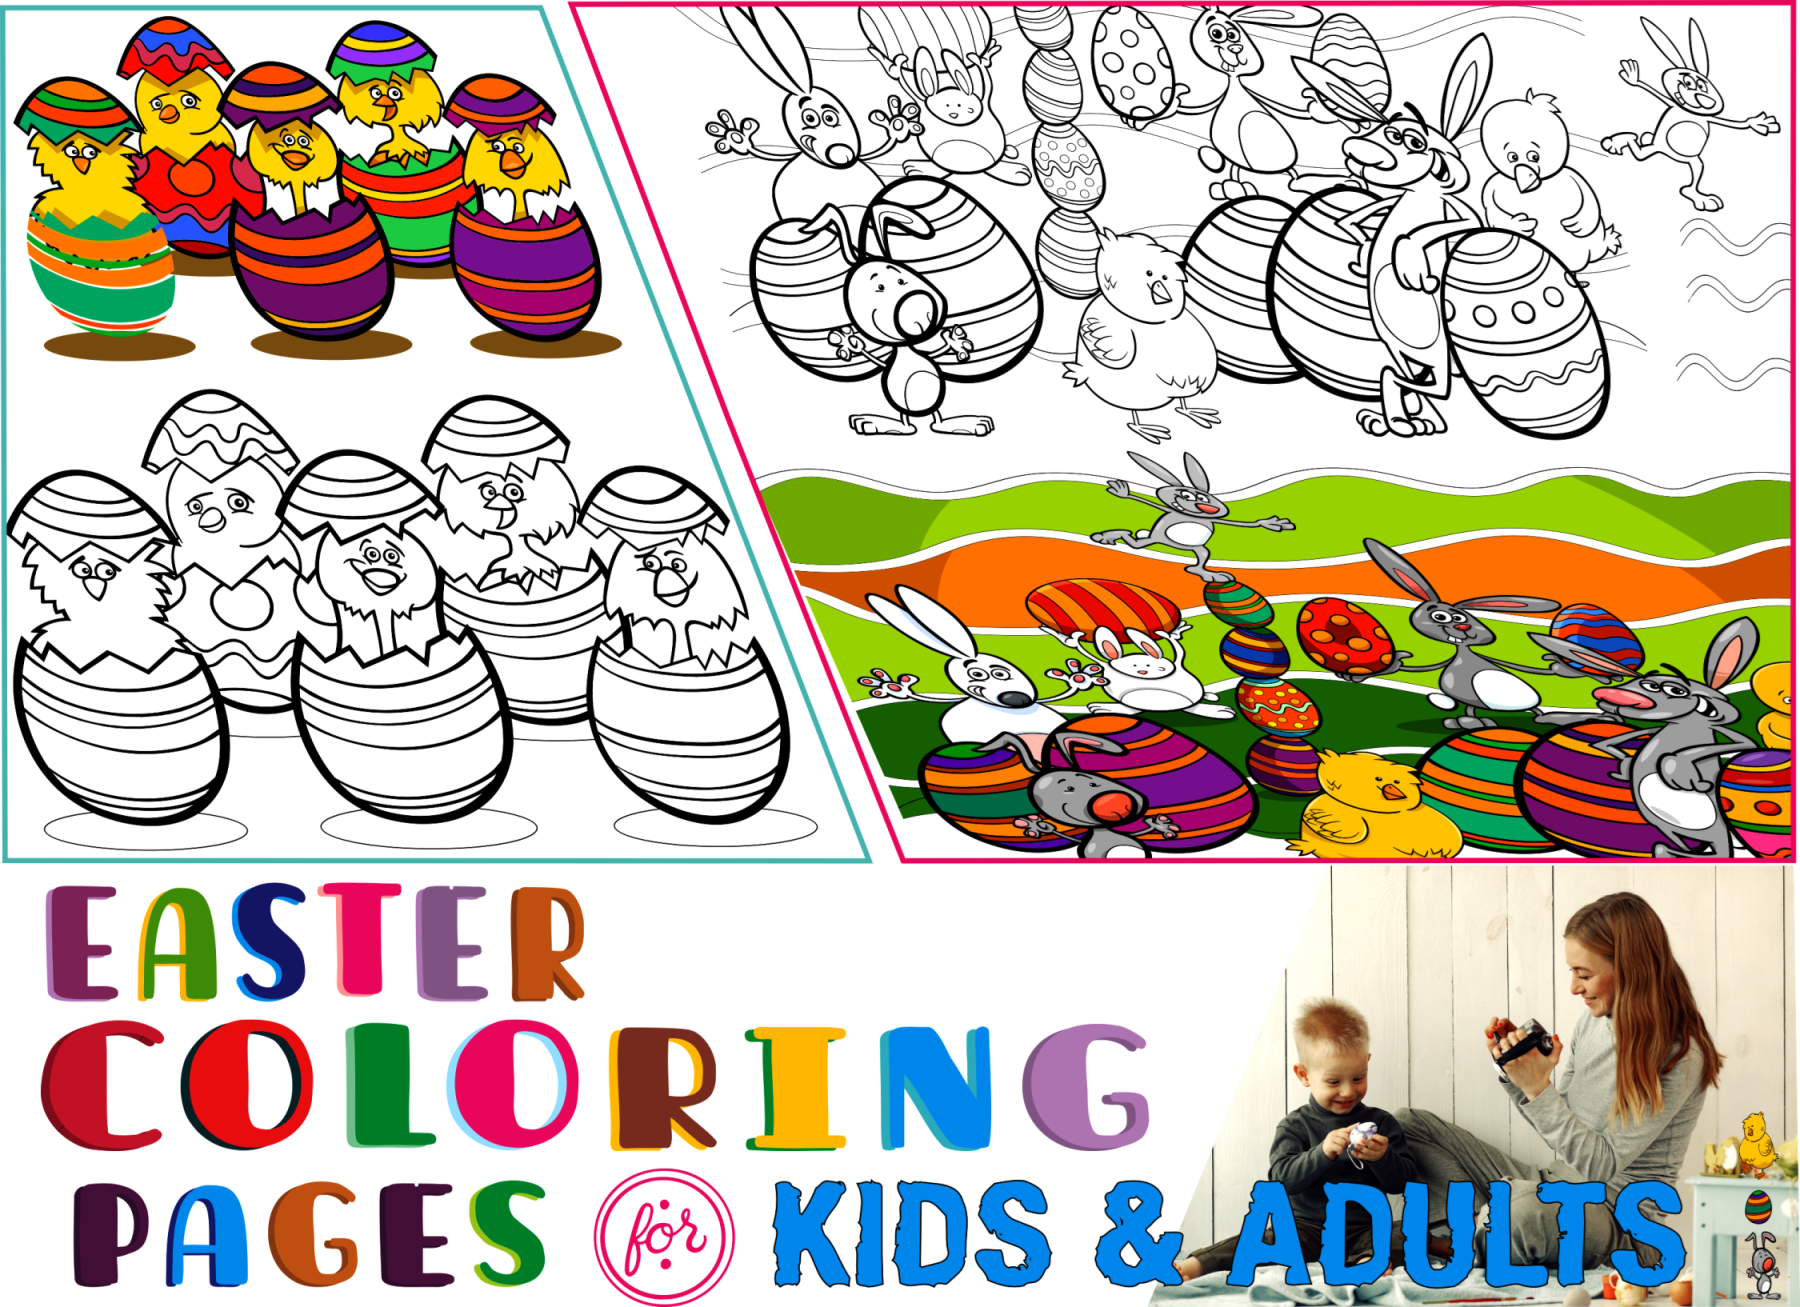 Top 10 Easter Coloring Pages & Printables Sources | 1307x1800